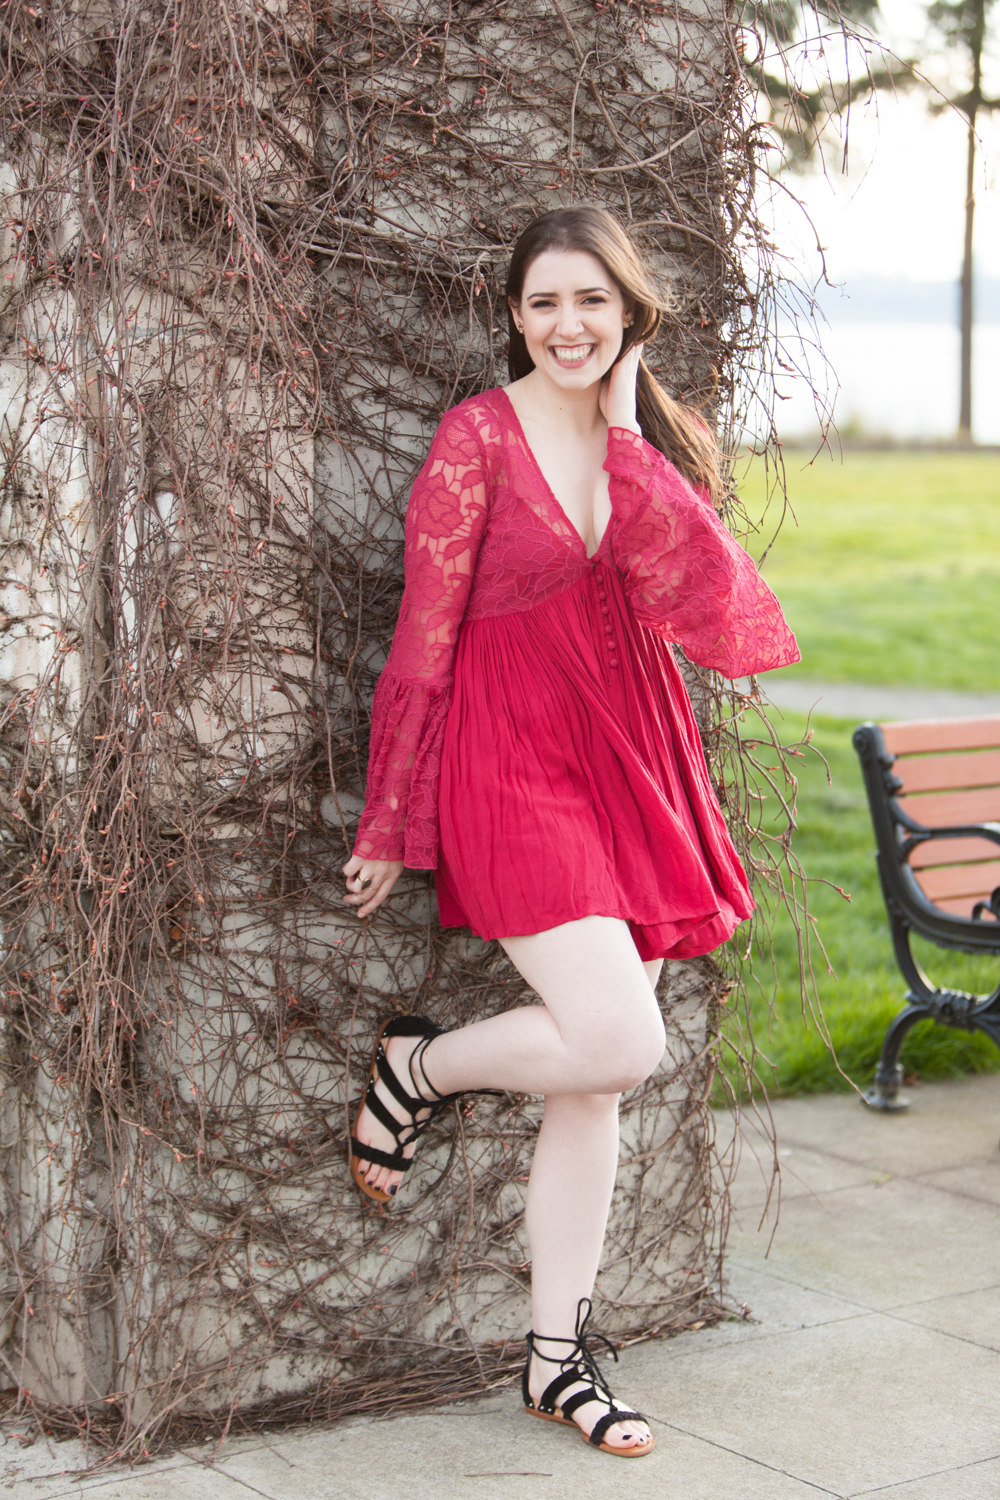 Free People Red Lace Dress - Spring Outfit - Free People With Love Dress and SARTO By Franco Sarto Pierson Lace-Up Sandal | Style and Cheek